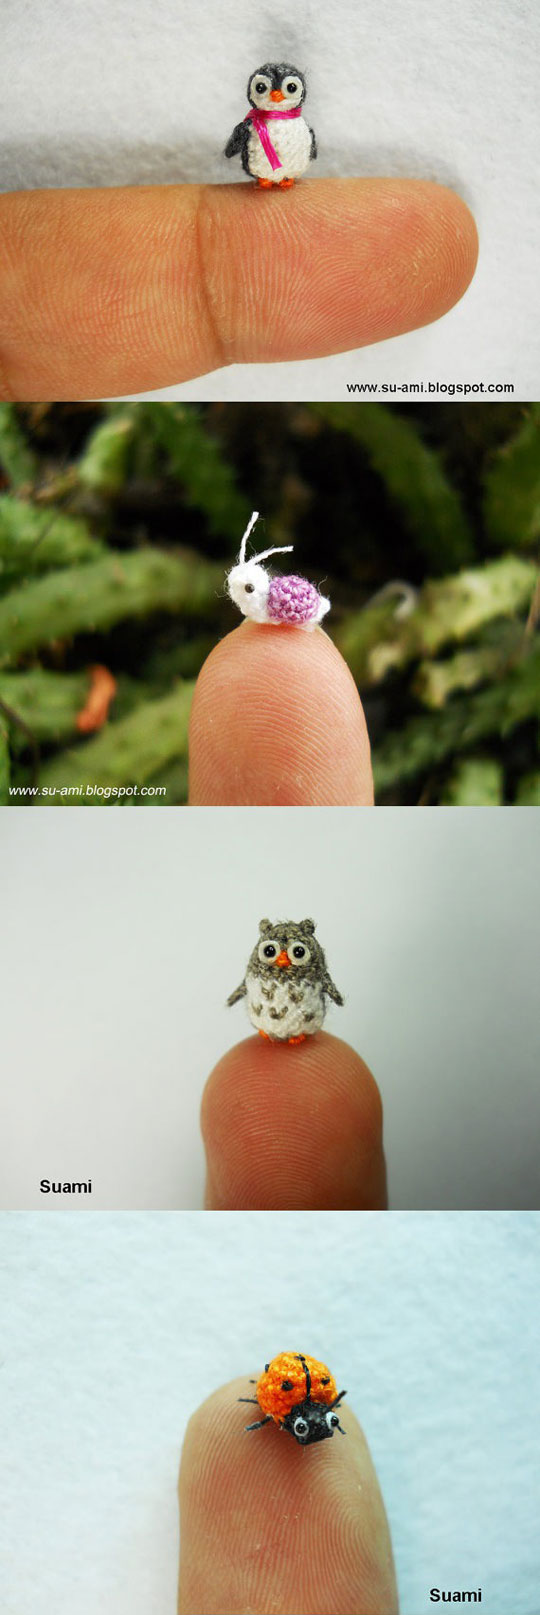 funny-tiny-animals-knitted-Suami